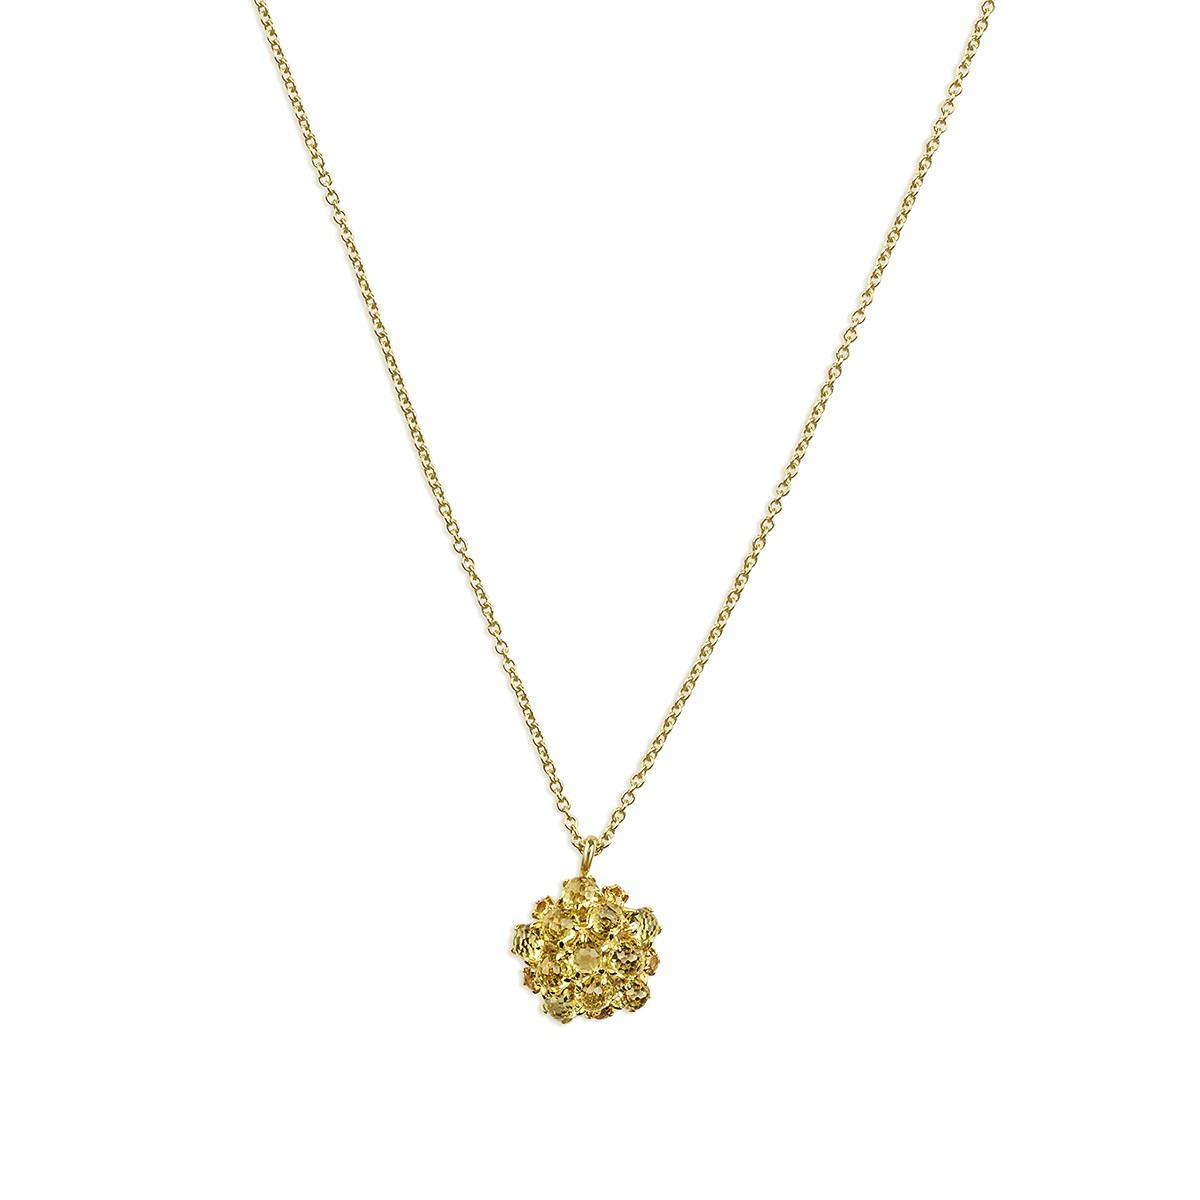 Sparkling Golden Flower shape Mini necklace